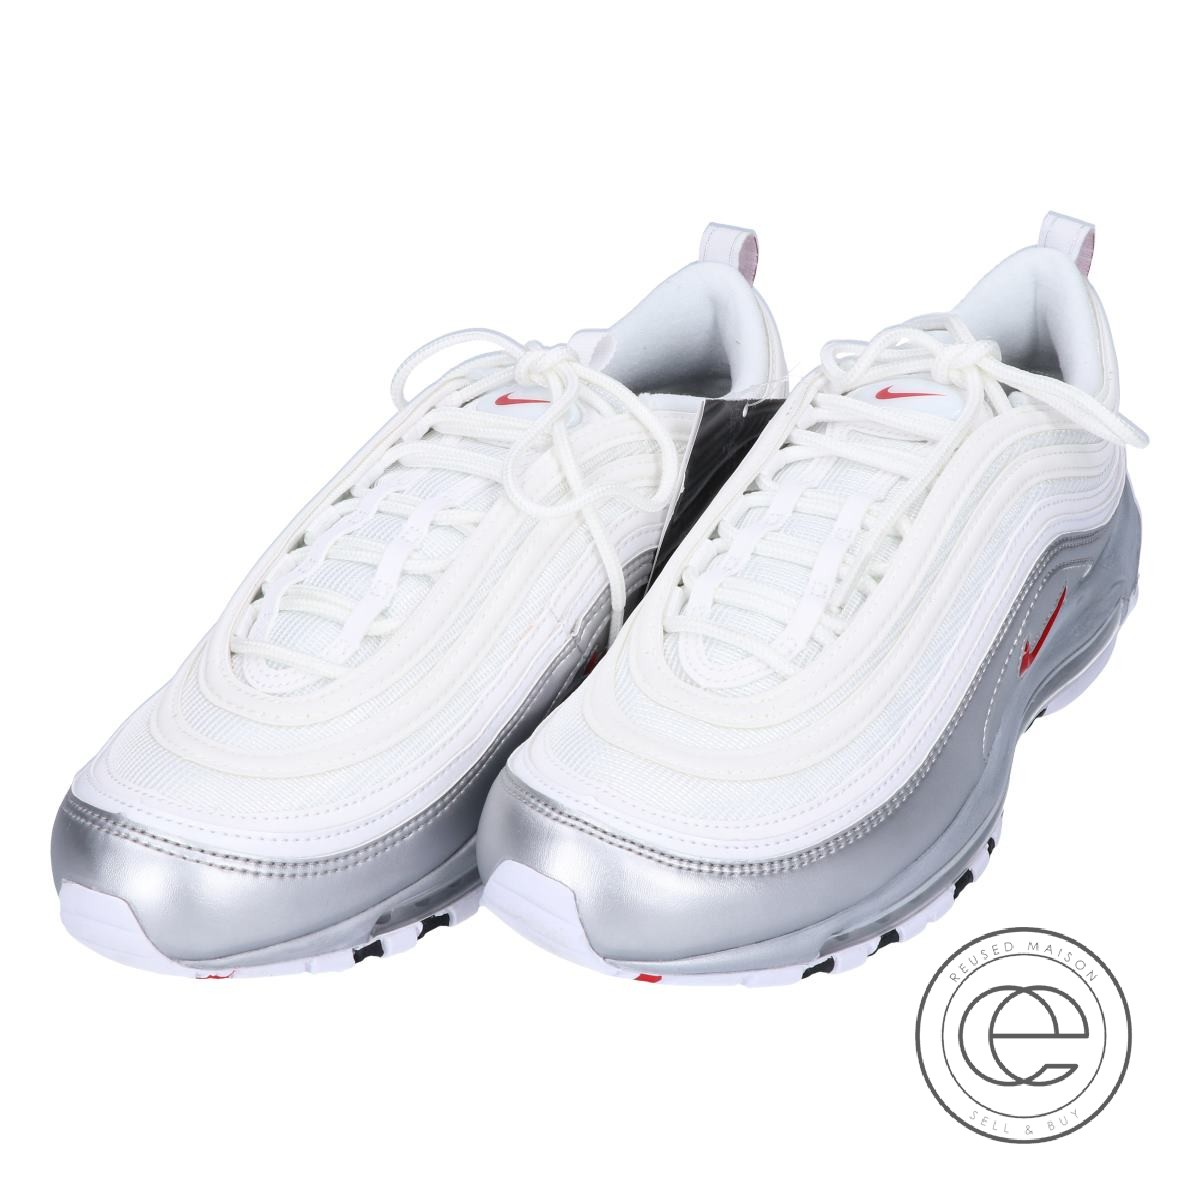 Nike Air Max 97 QS White – AT5458 100 | AFEW STORE